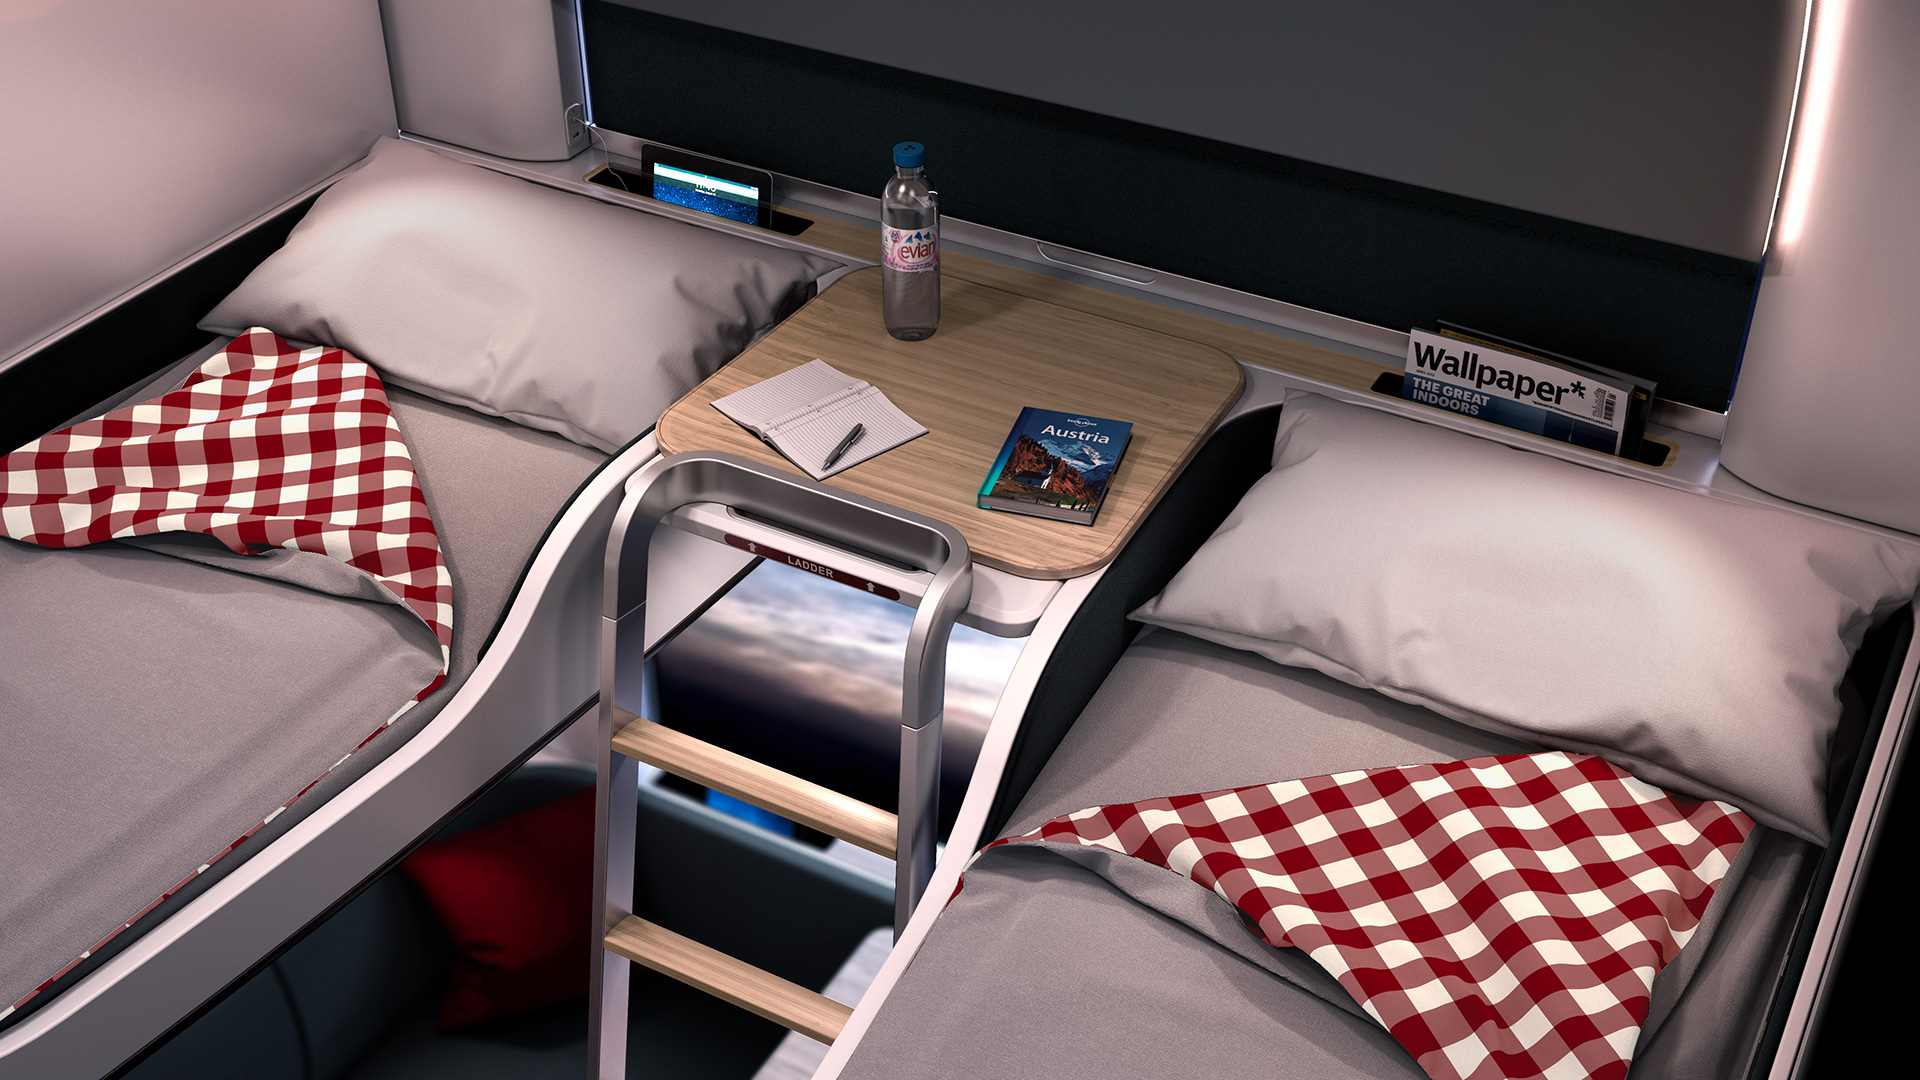 Small tables between beds provide space for drinks and reading materials, designed by PriestmanGoode and ÖBB Austrian Federal Railways |